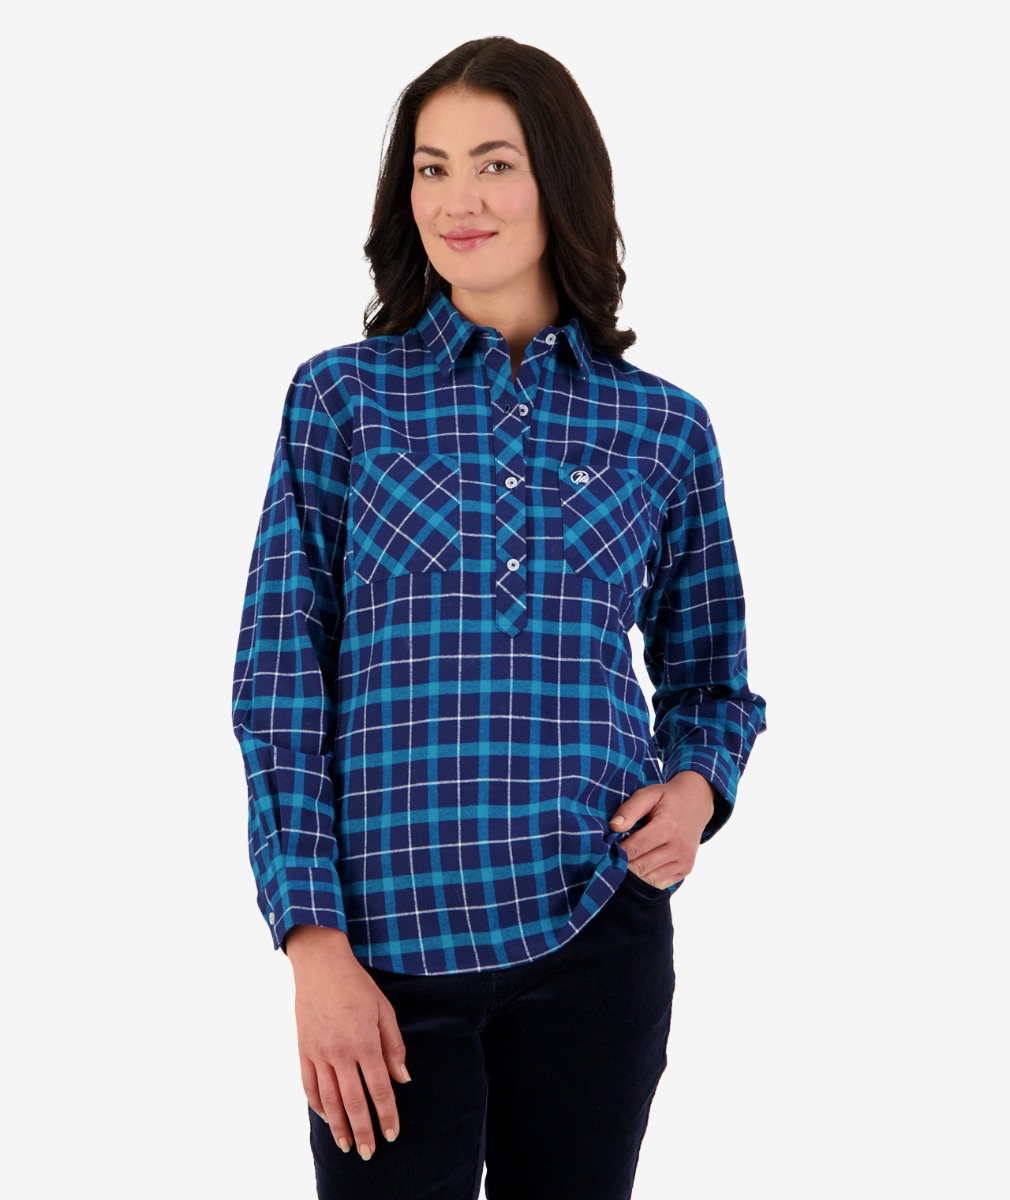 Women's Barn Cotton Check Work Shirt in Teal/Navy Check